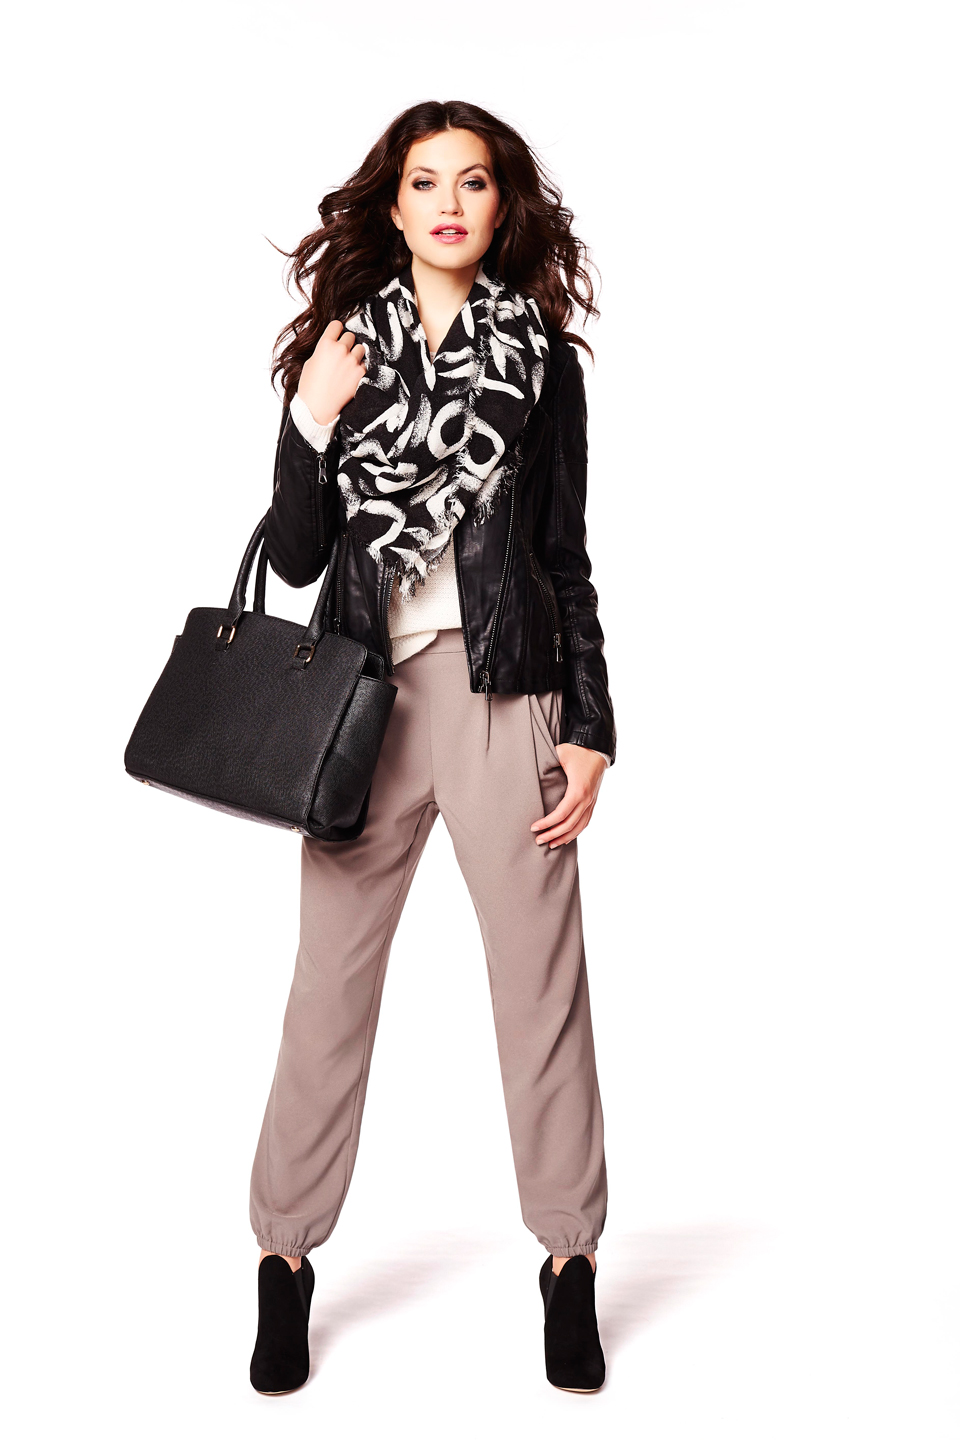 outfit11-1--960px-wide.jpg